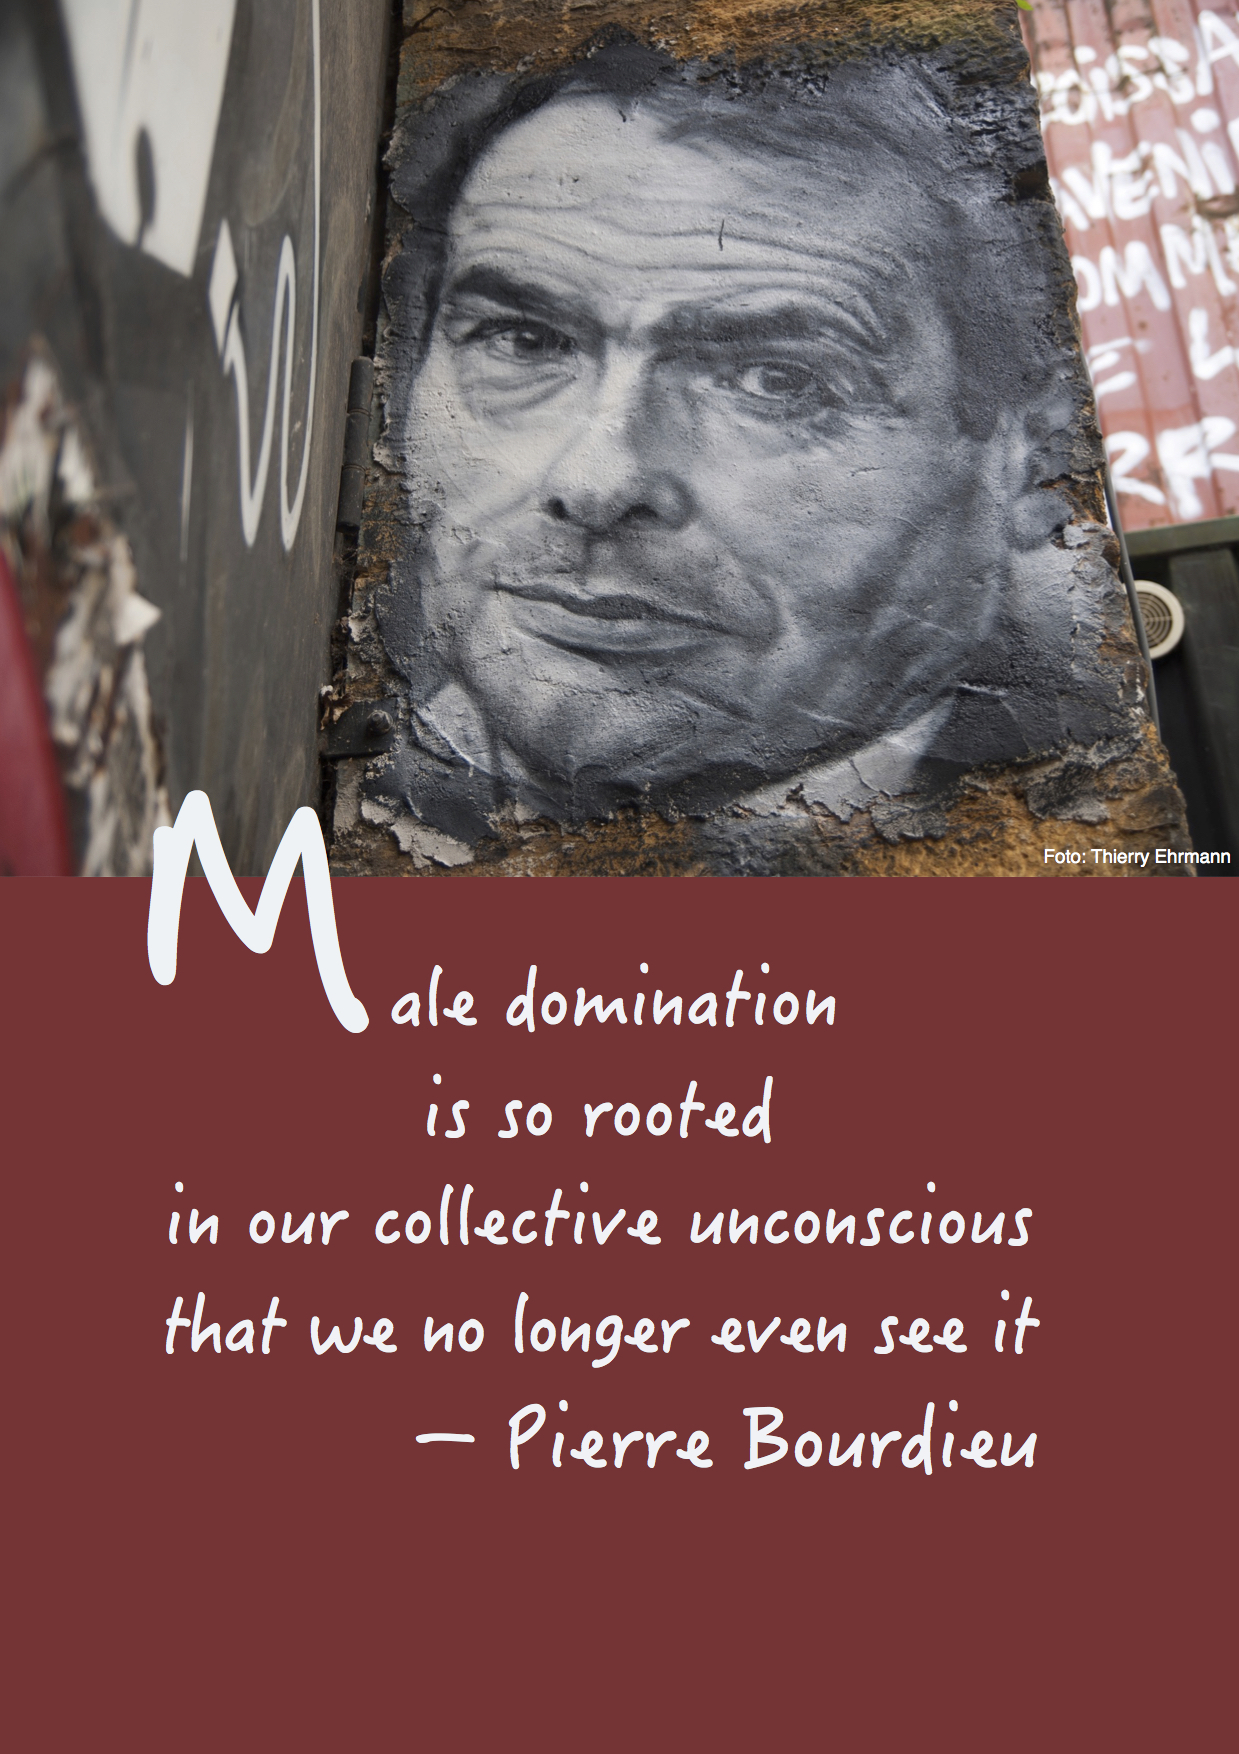 "Citat af Pierre Bourdieu: ""Male domination is so rooted in our collective unconscious that we no longer even see it."" Originalfoto: Thierry Ehrmann (flickr.com). Citatillustration: Maria Busch"